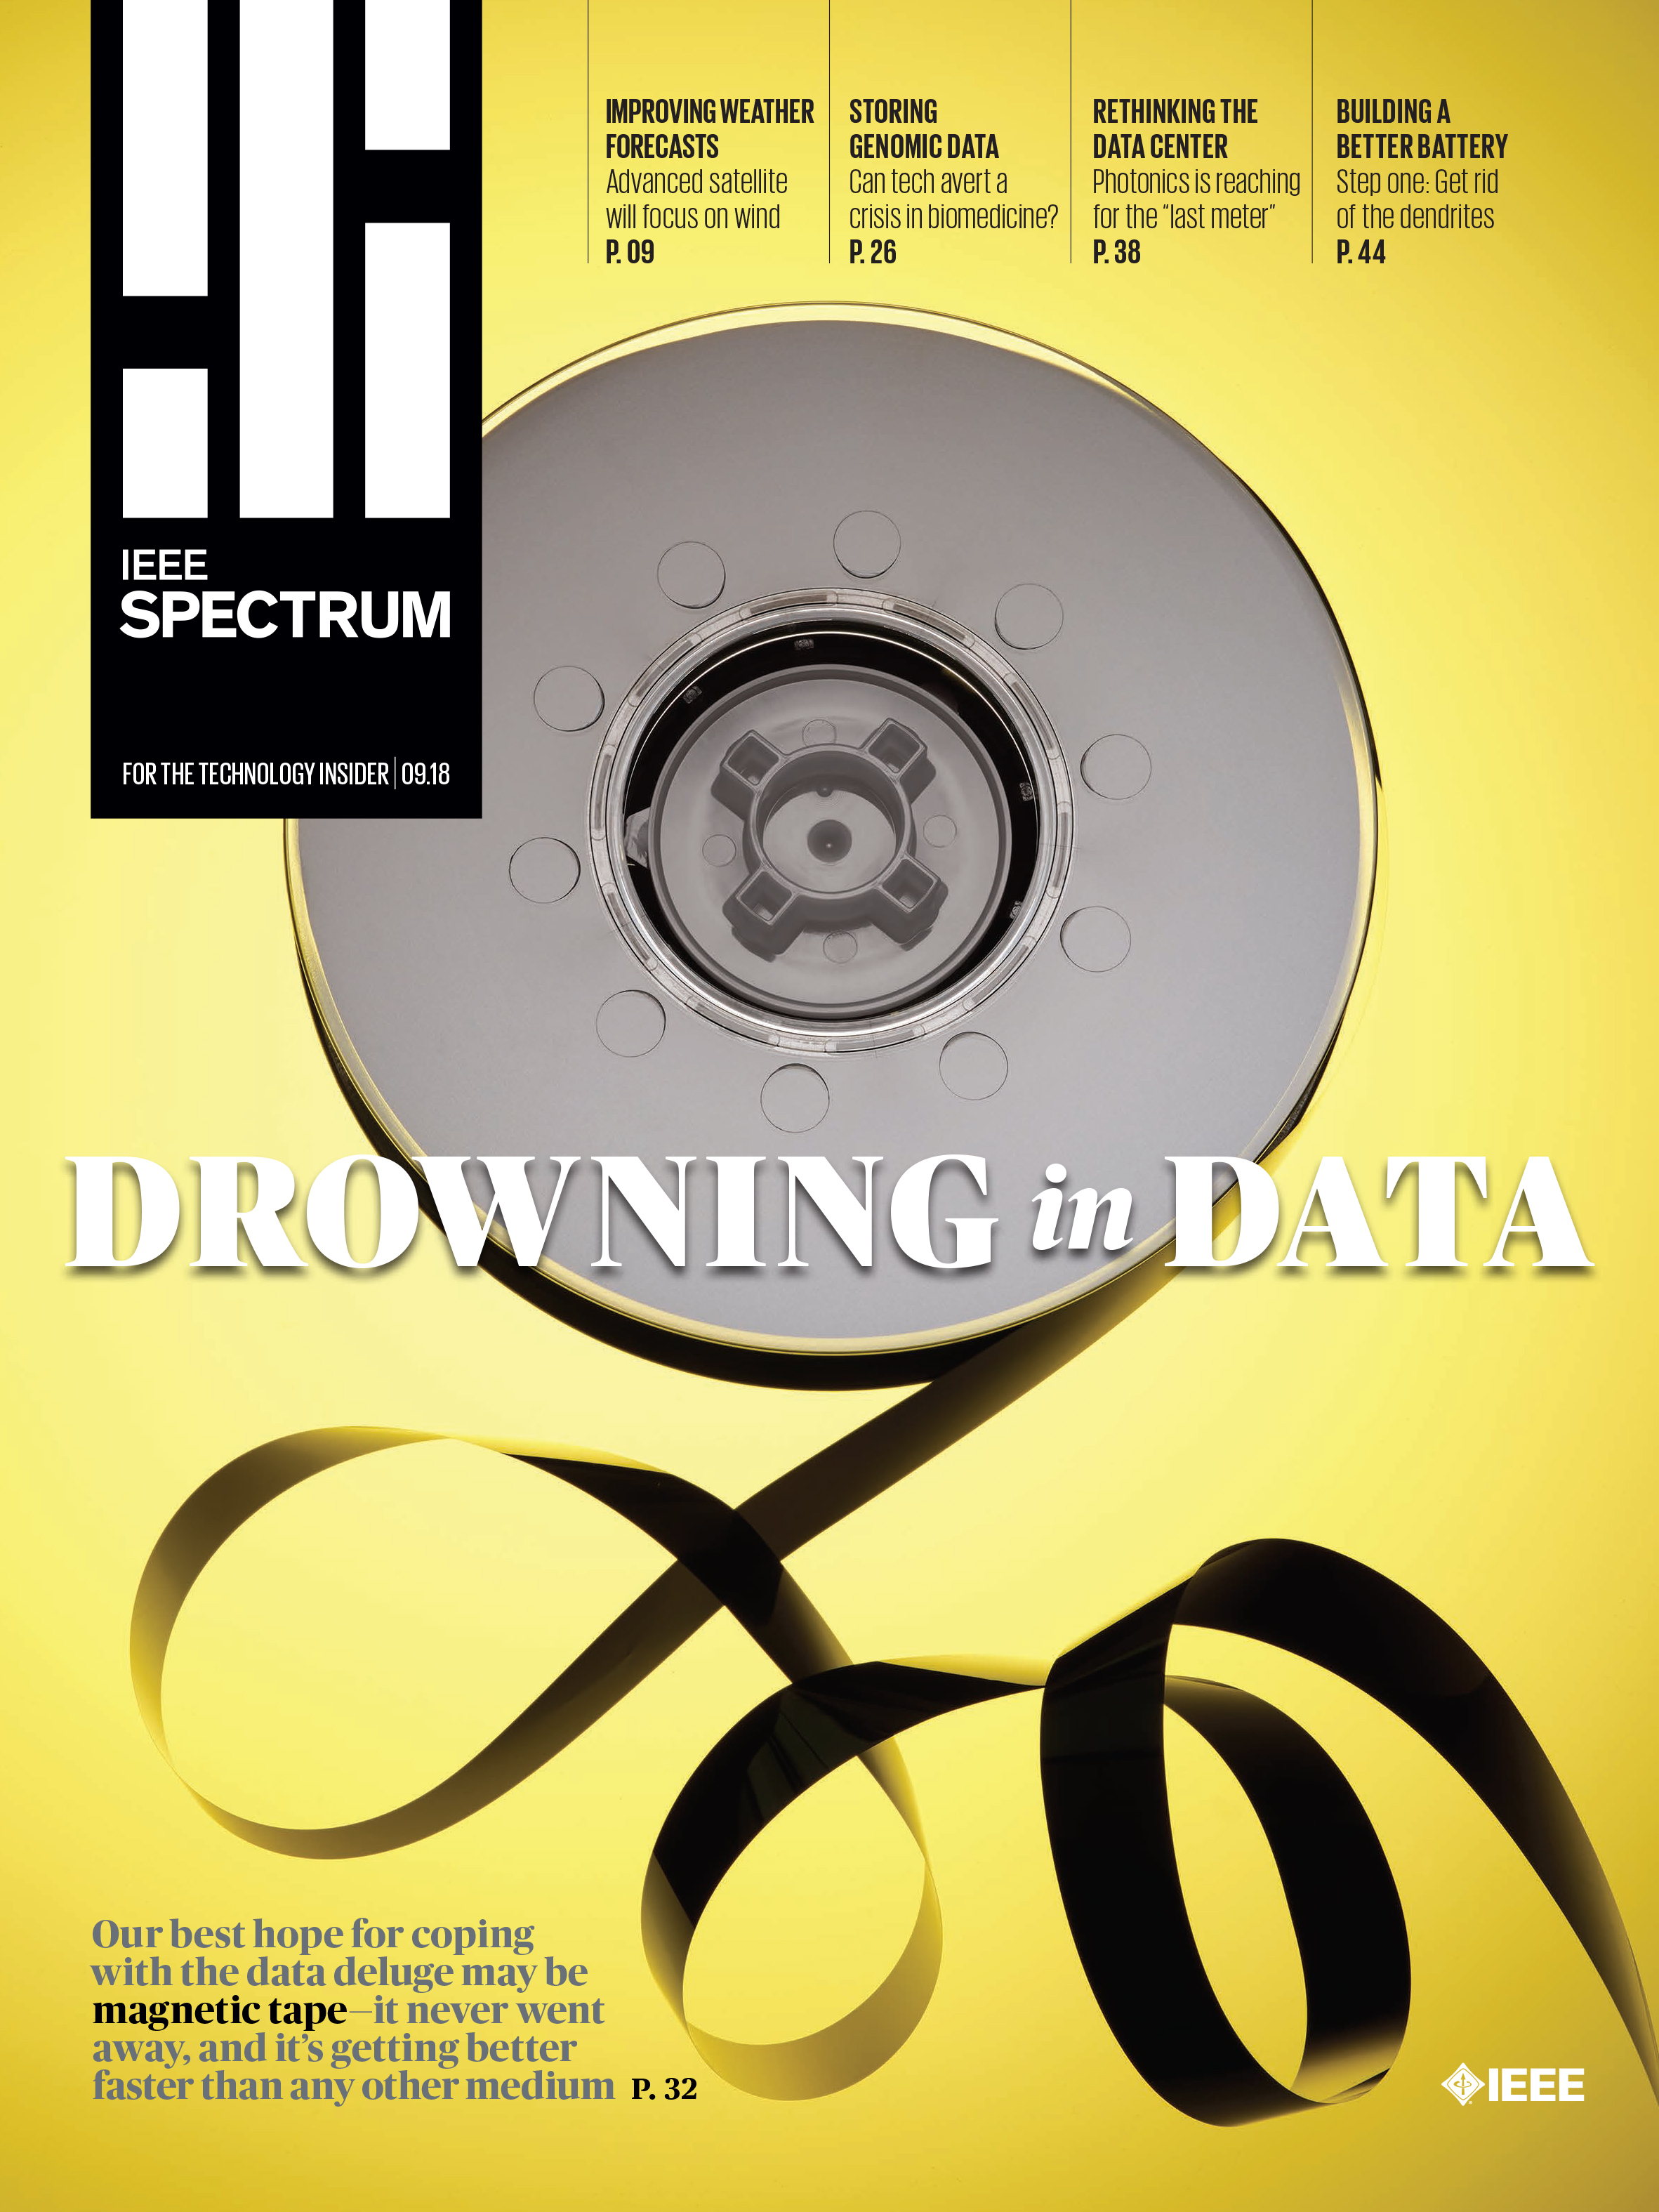 IEEE Spectrum - Cover Story 'Drowning in Data'